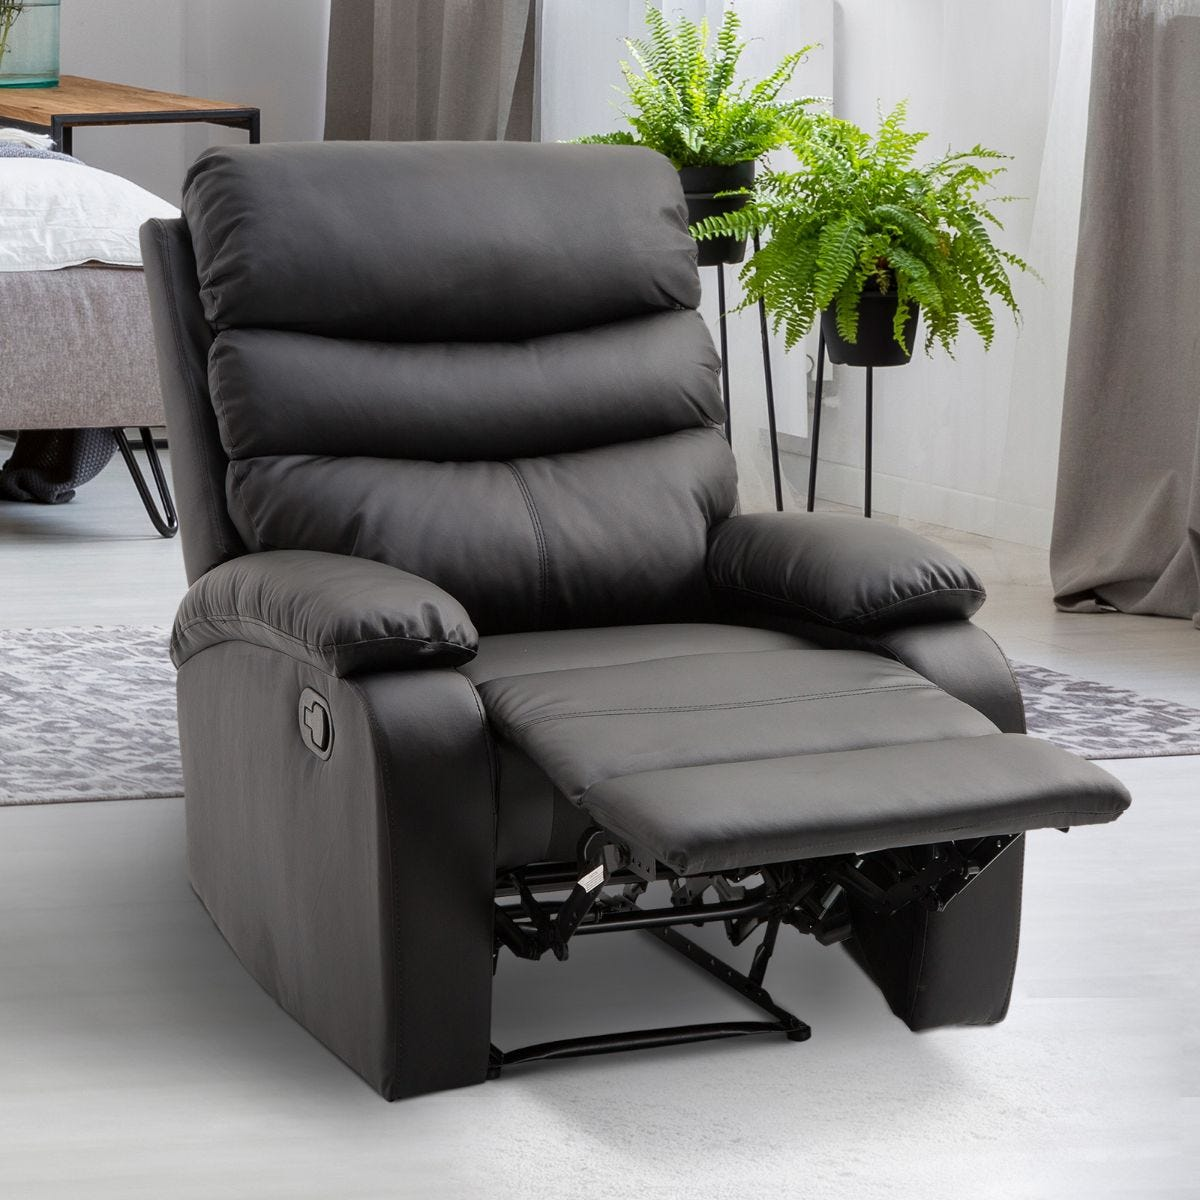 PU Faux Leather Manual Recliner Armchair Padded Armrest Footrest Black